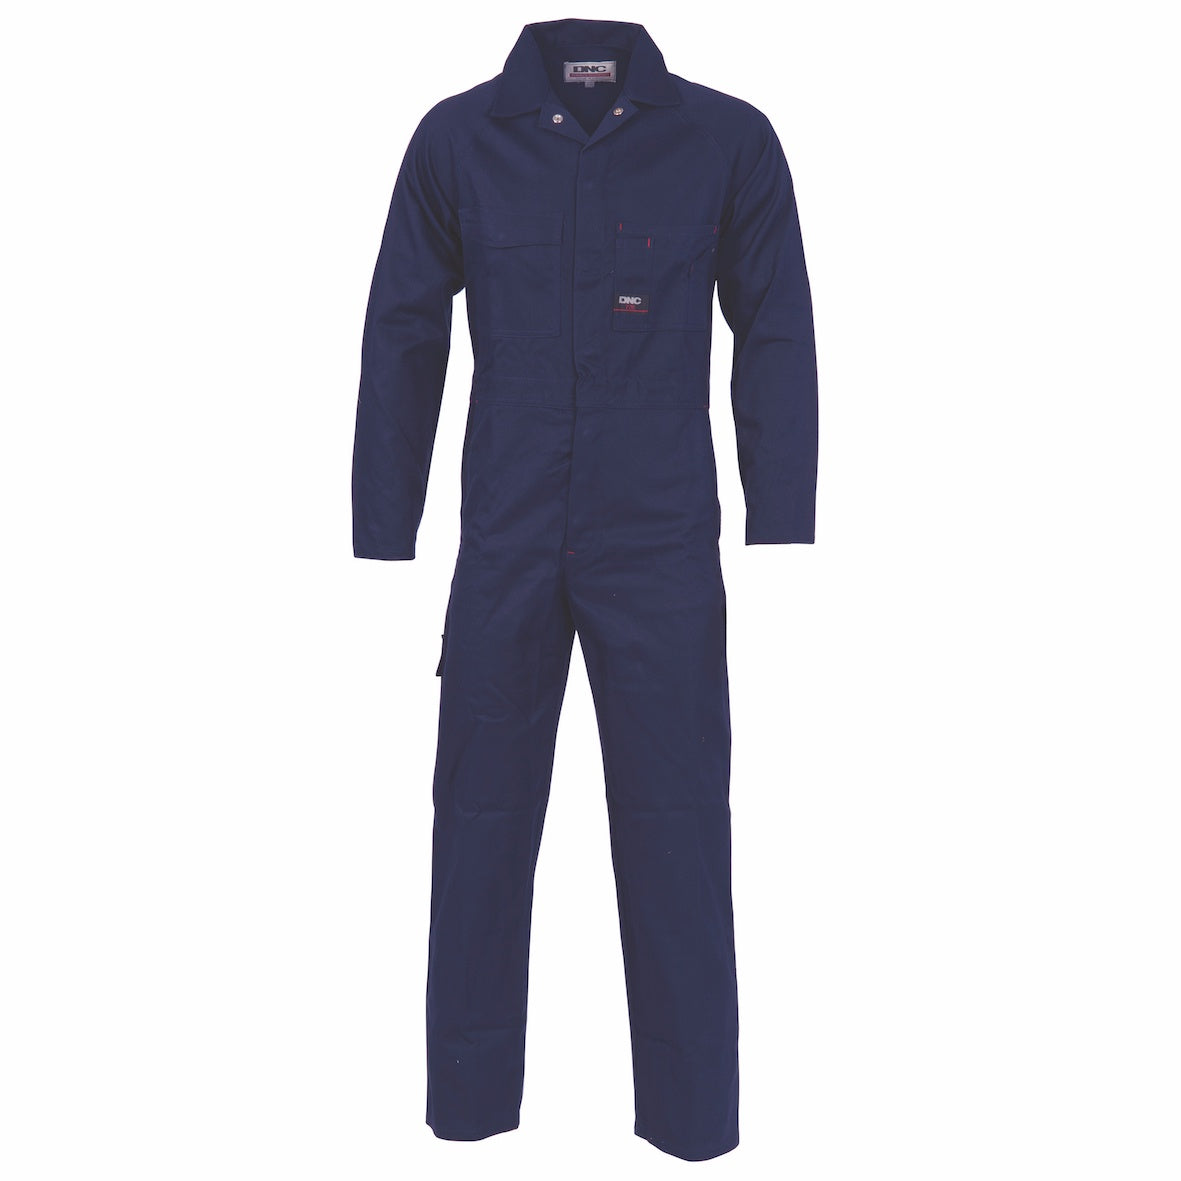 DNC - 3101 - Heavy Weight Cotton Drill Overall